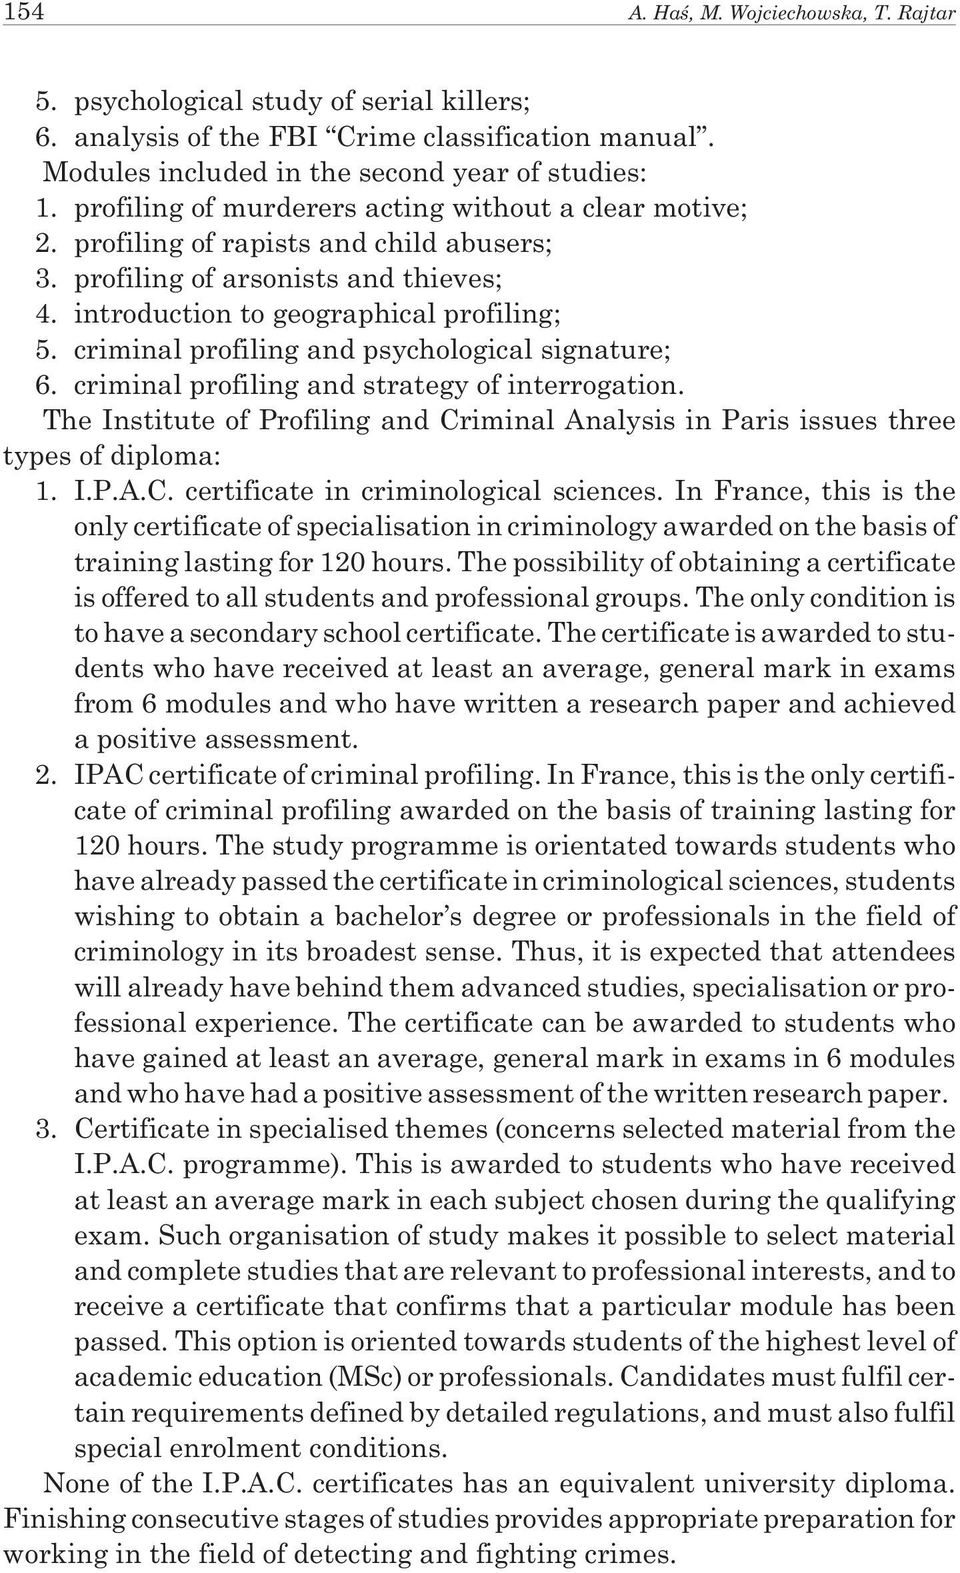 criminal profiling and psychological signature; 6. criminal profiling and strategy of interrogation. The Institute of Profiling and Criminal Analysis in Paris issues three types of diploma: 1. I.P.A.C. certificate in criminological sciences.